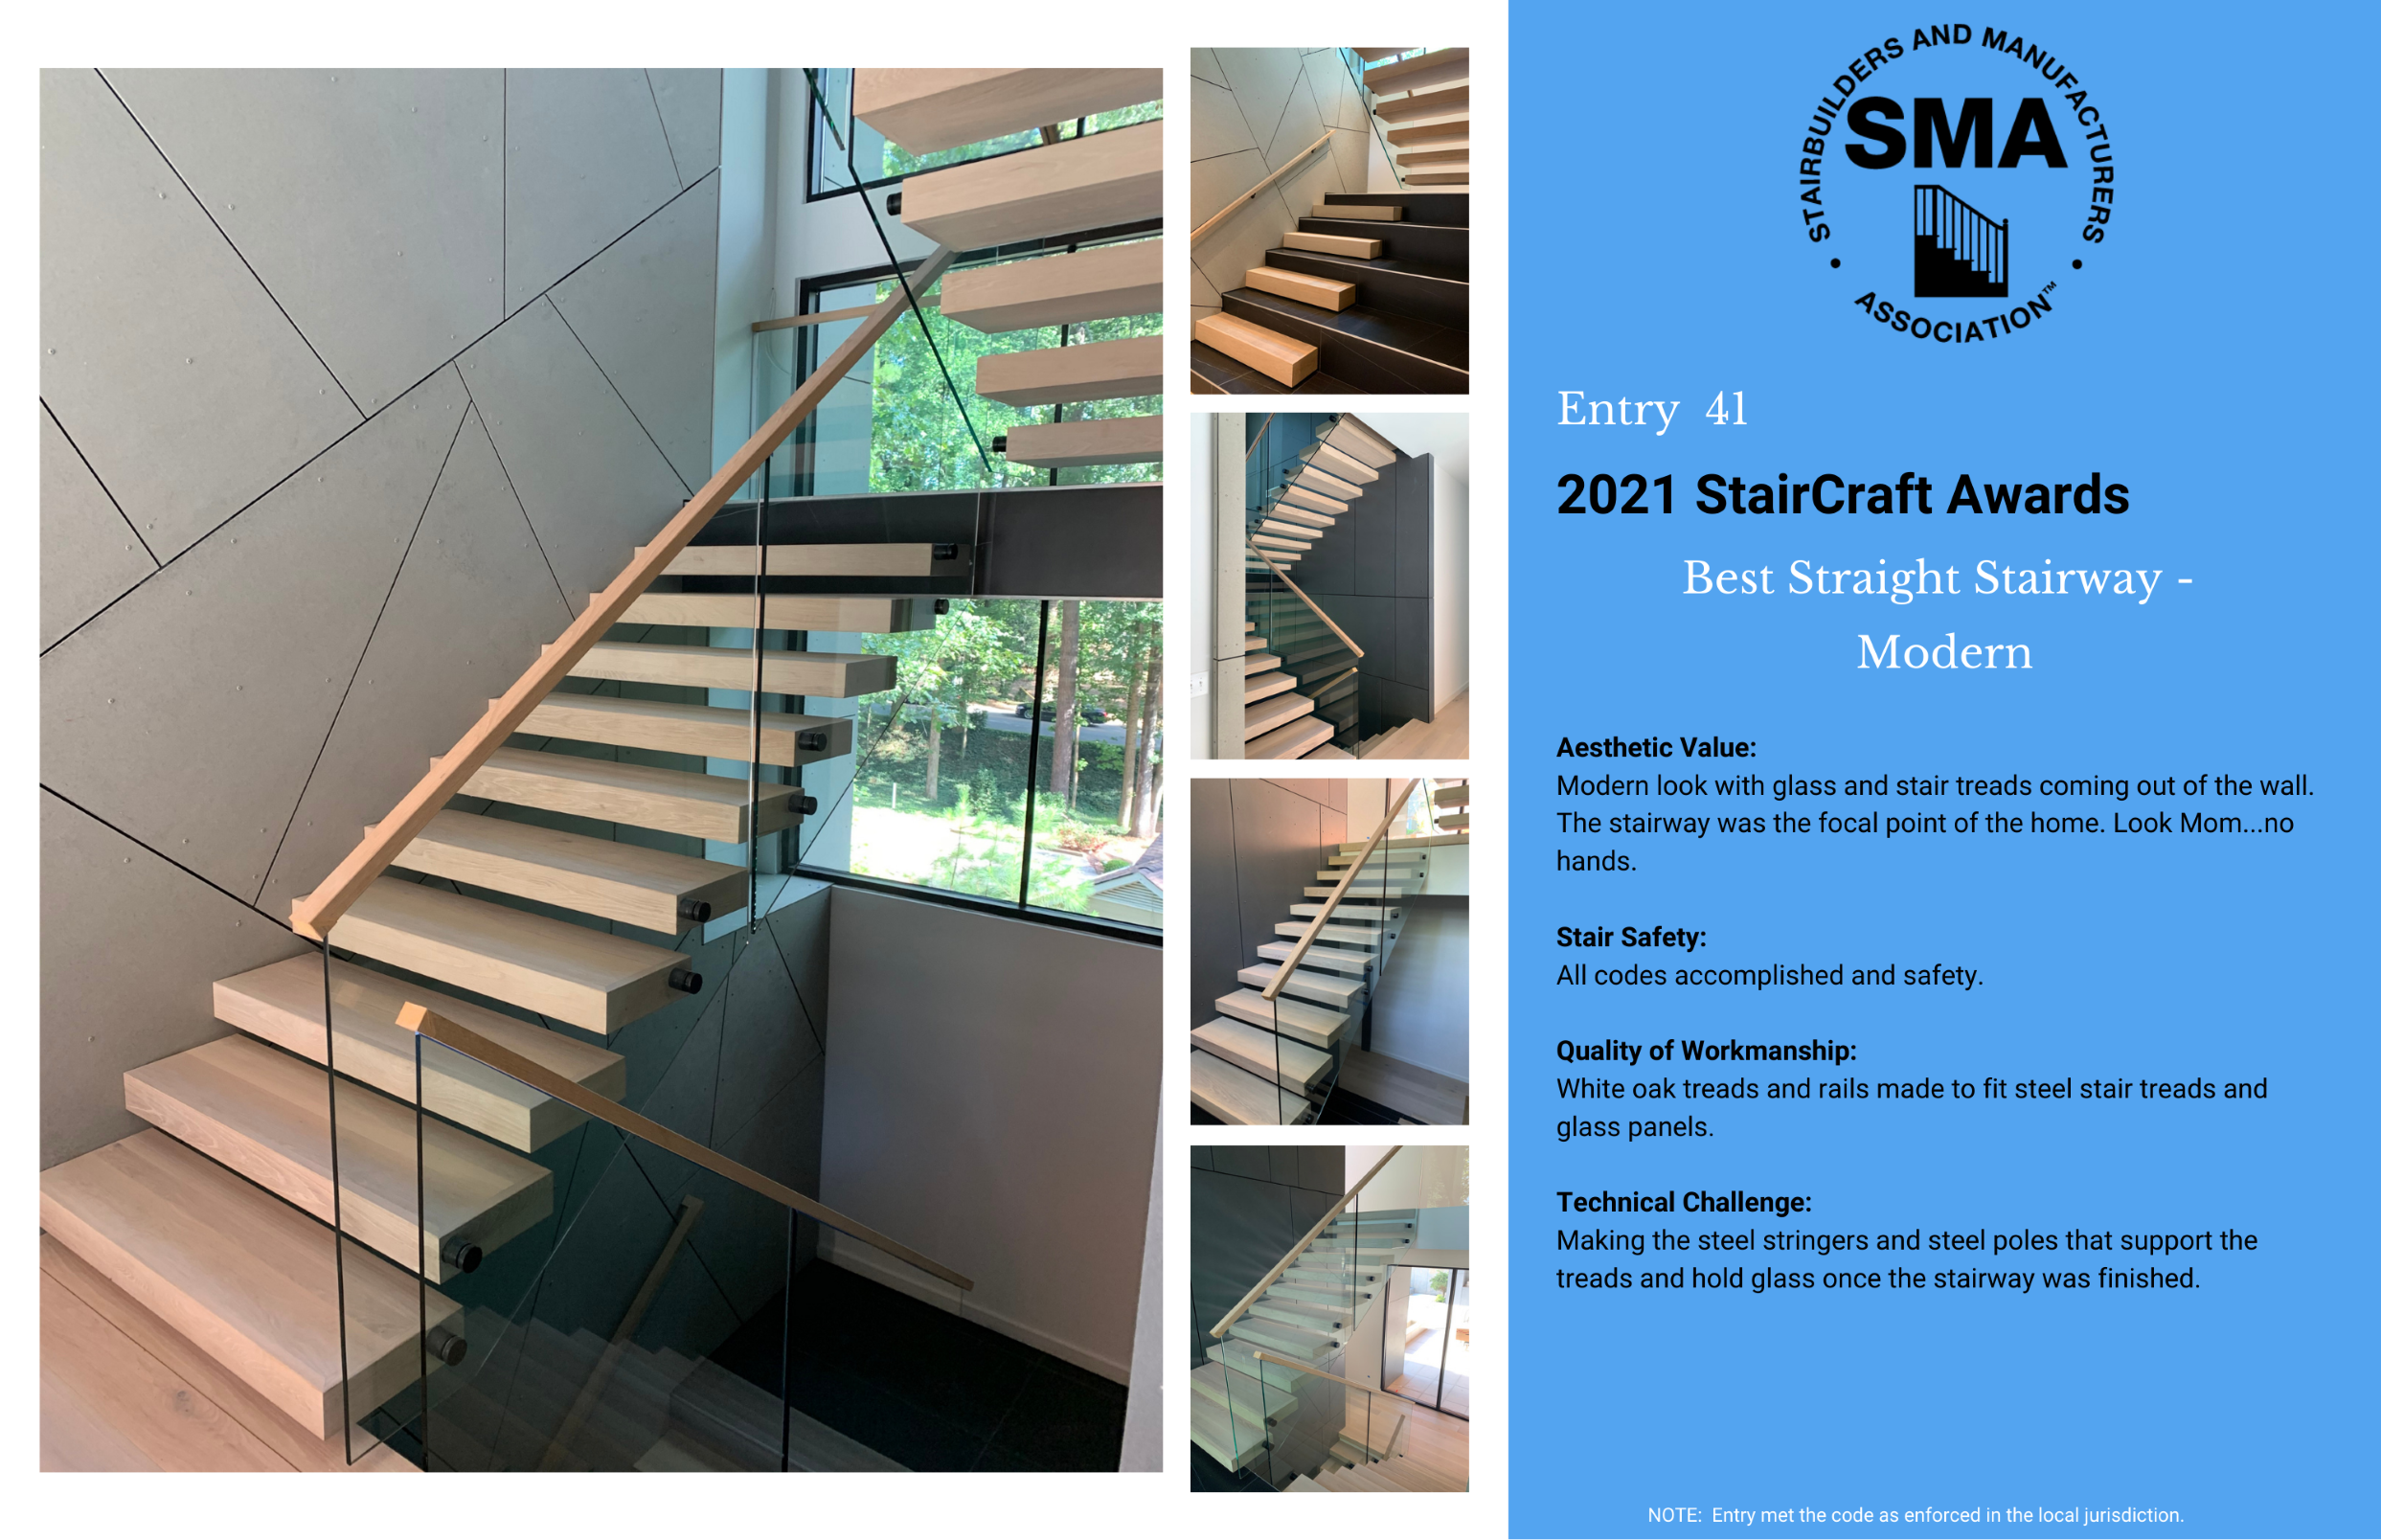 2021 StairCraft Awards Entry 41